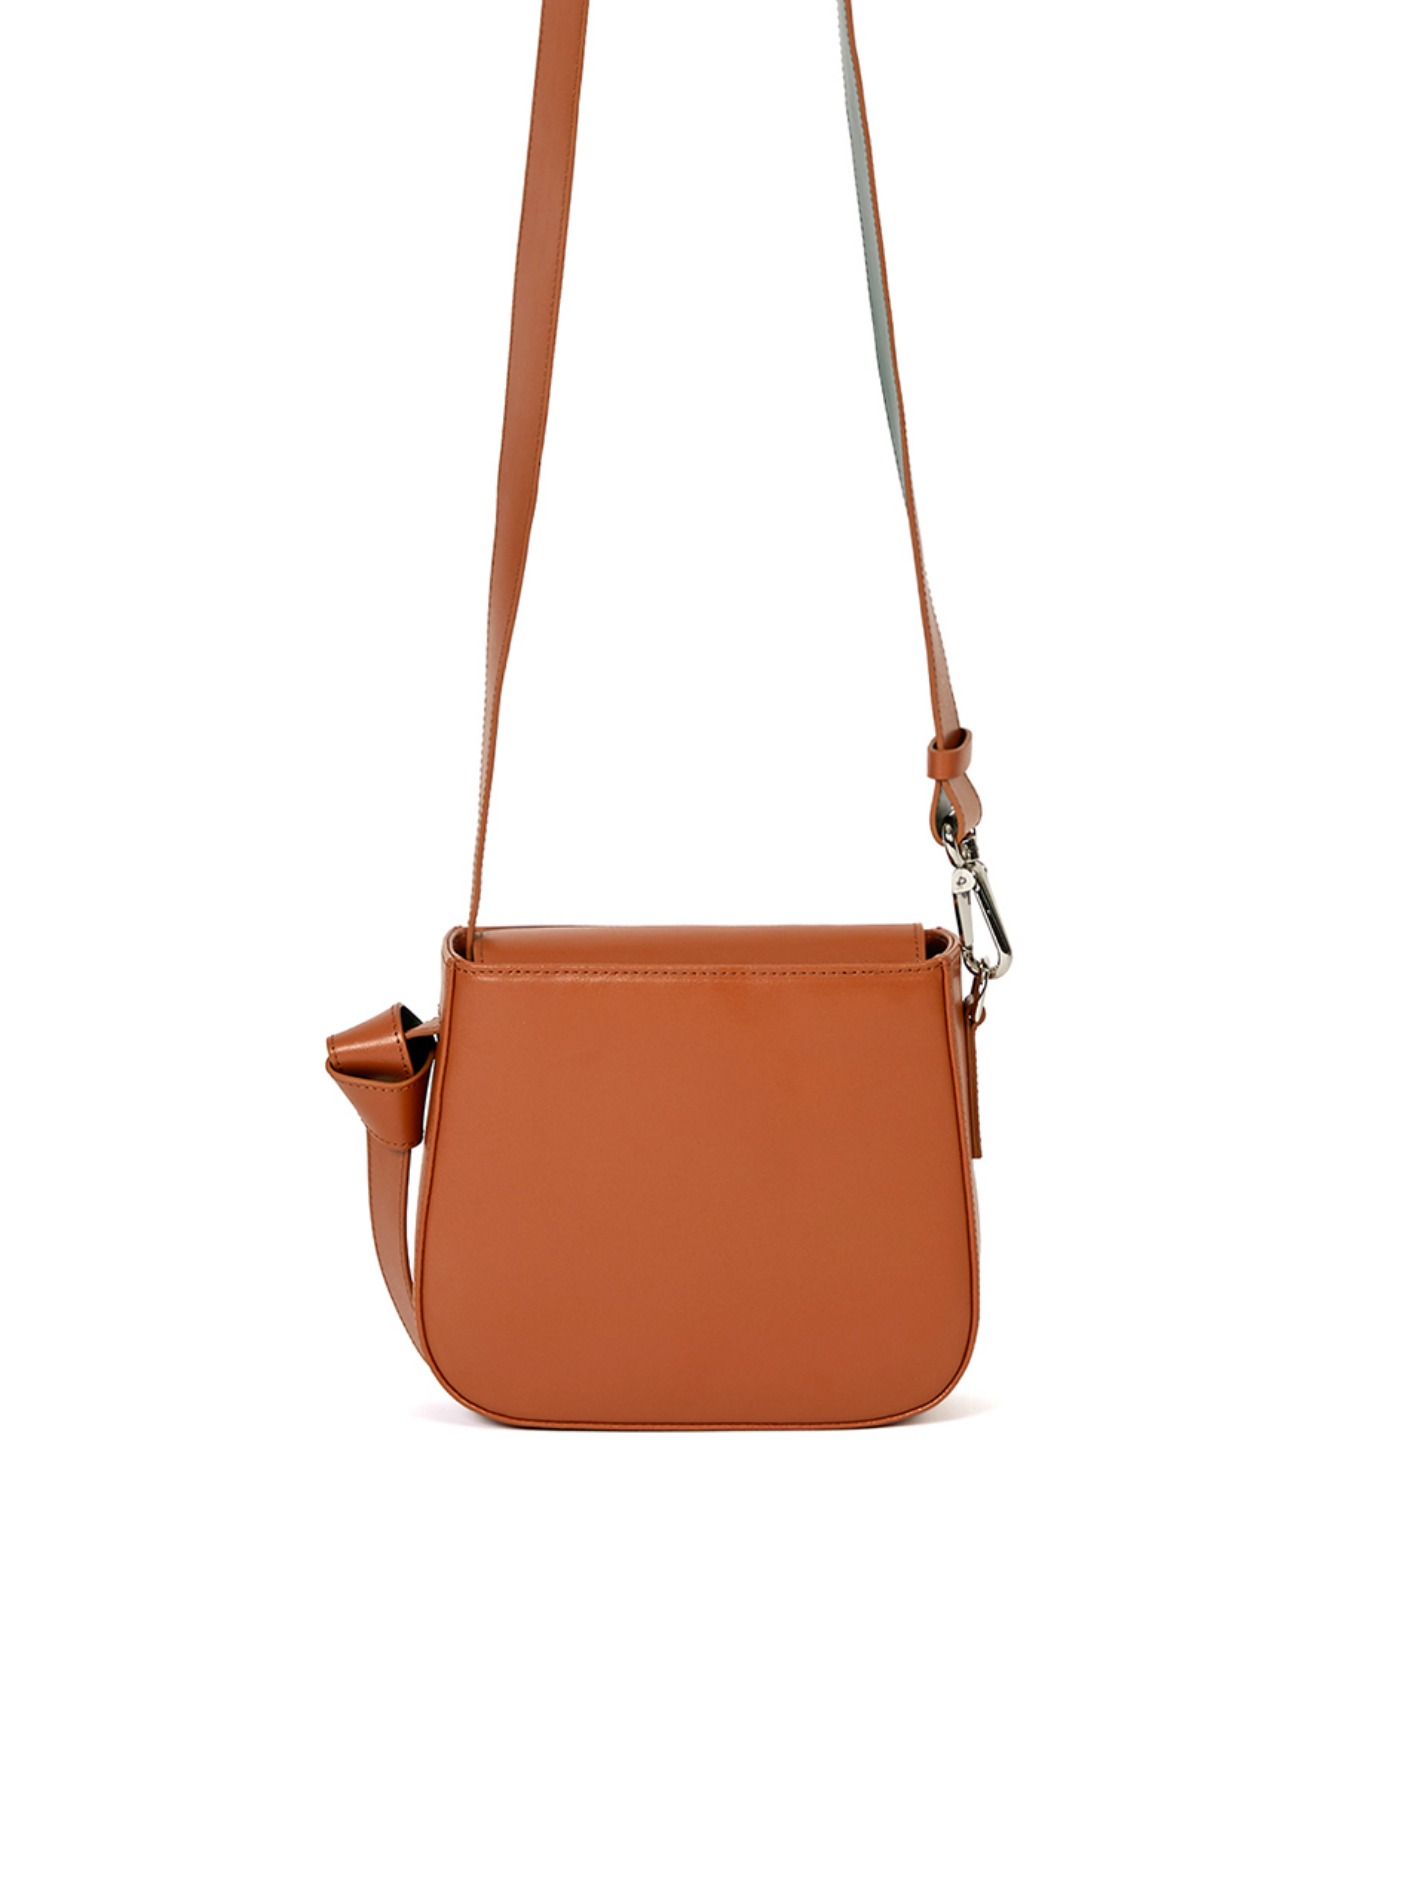 COLOR BLOCK BAG - MINI CAMEL